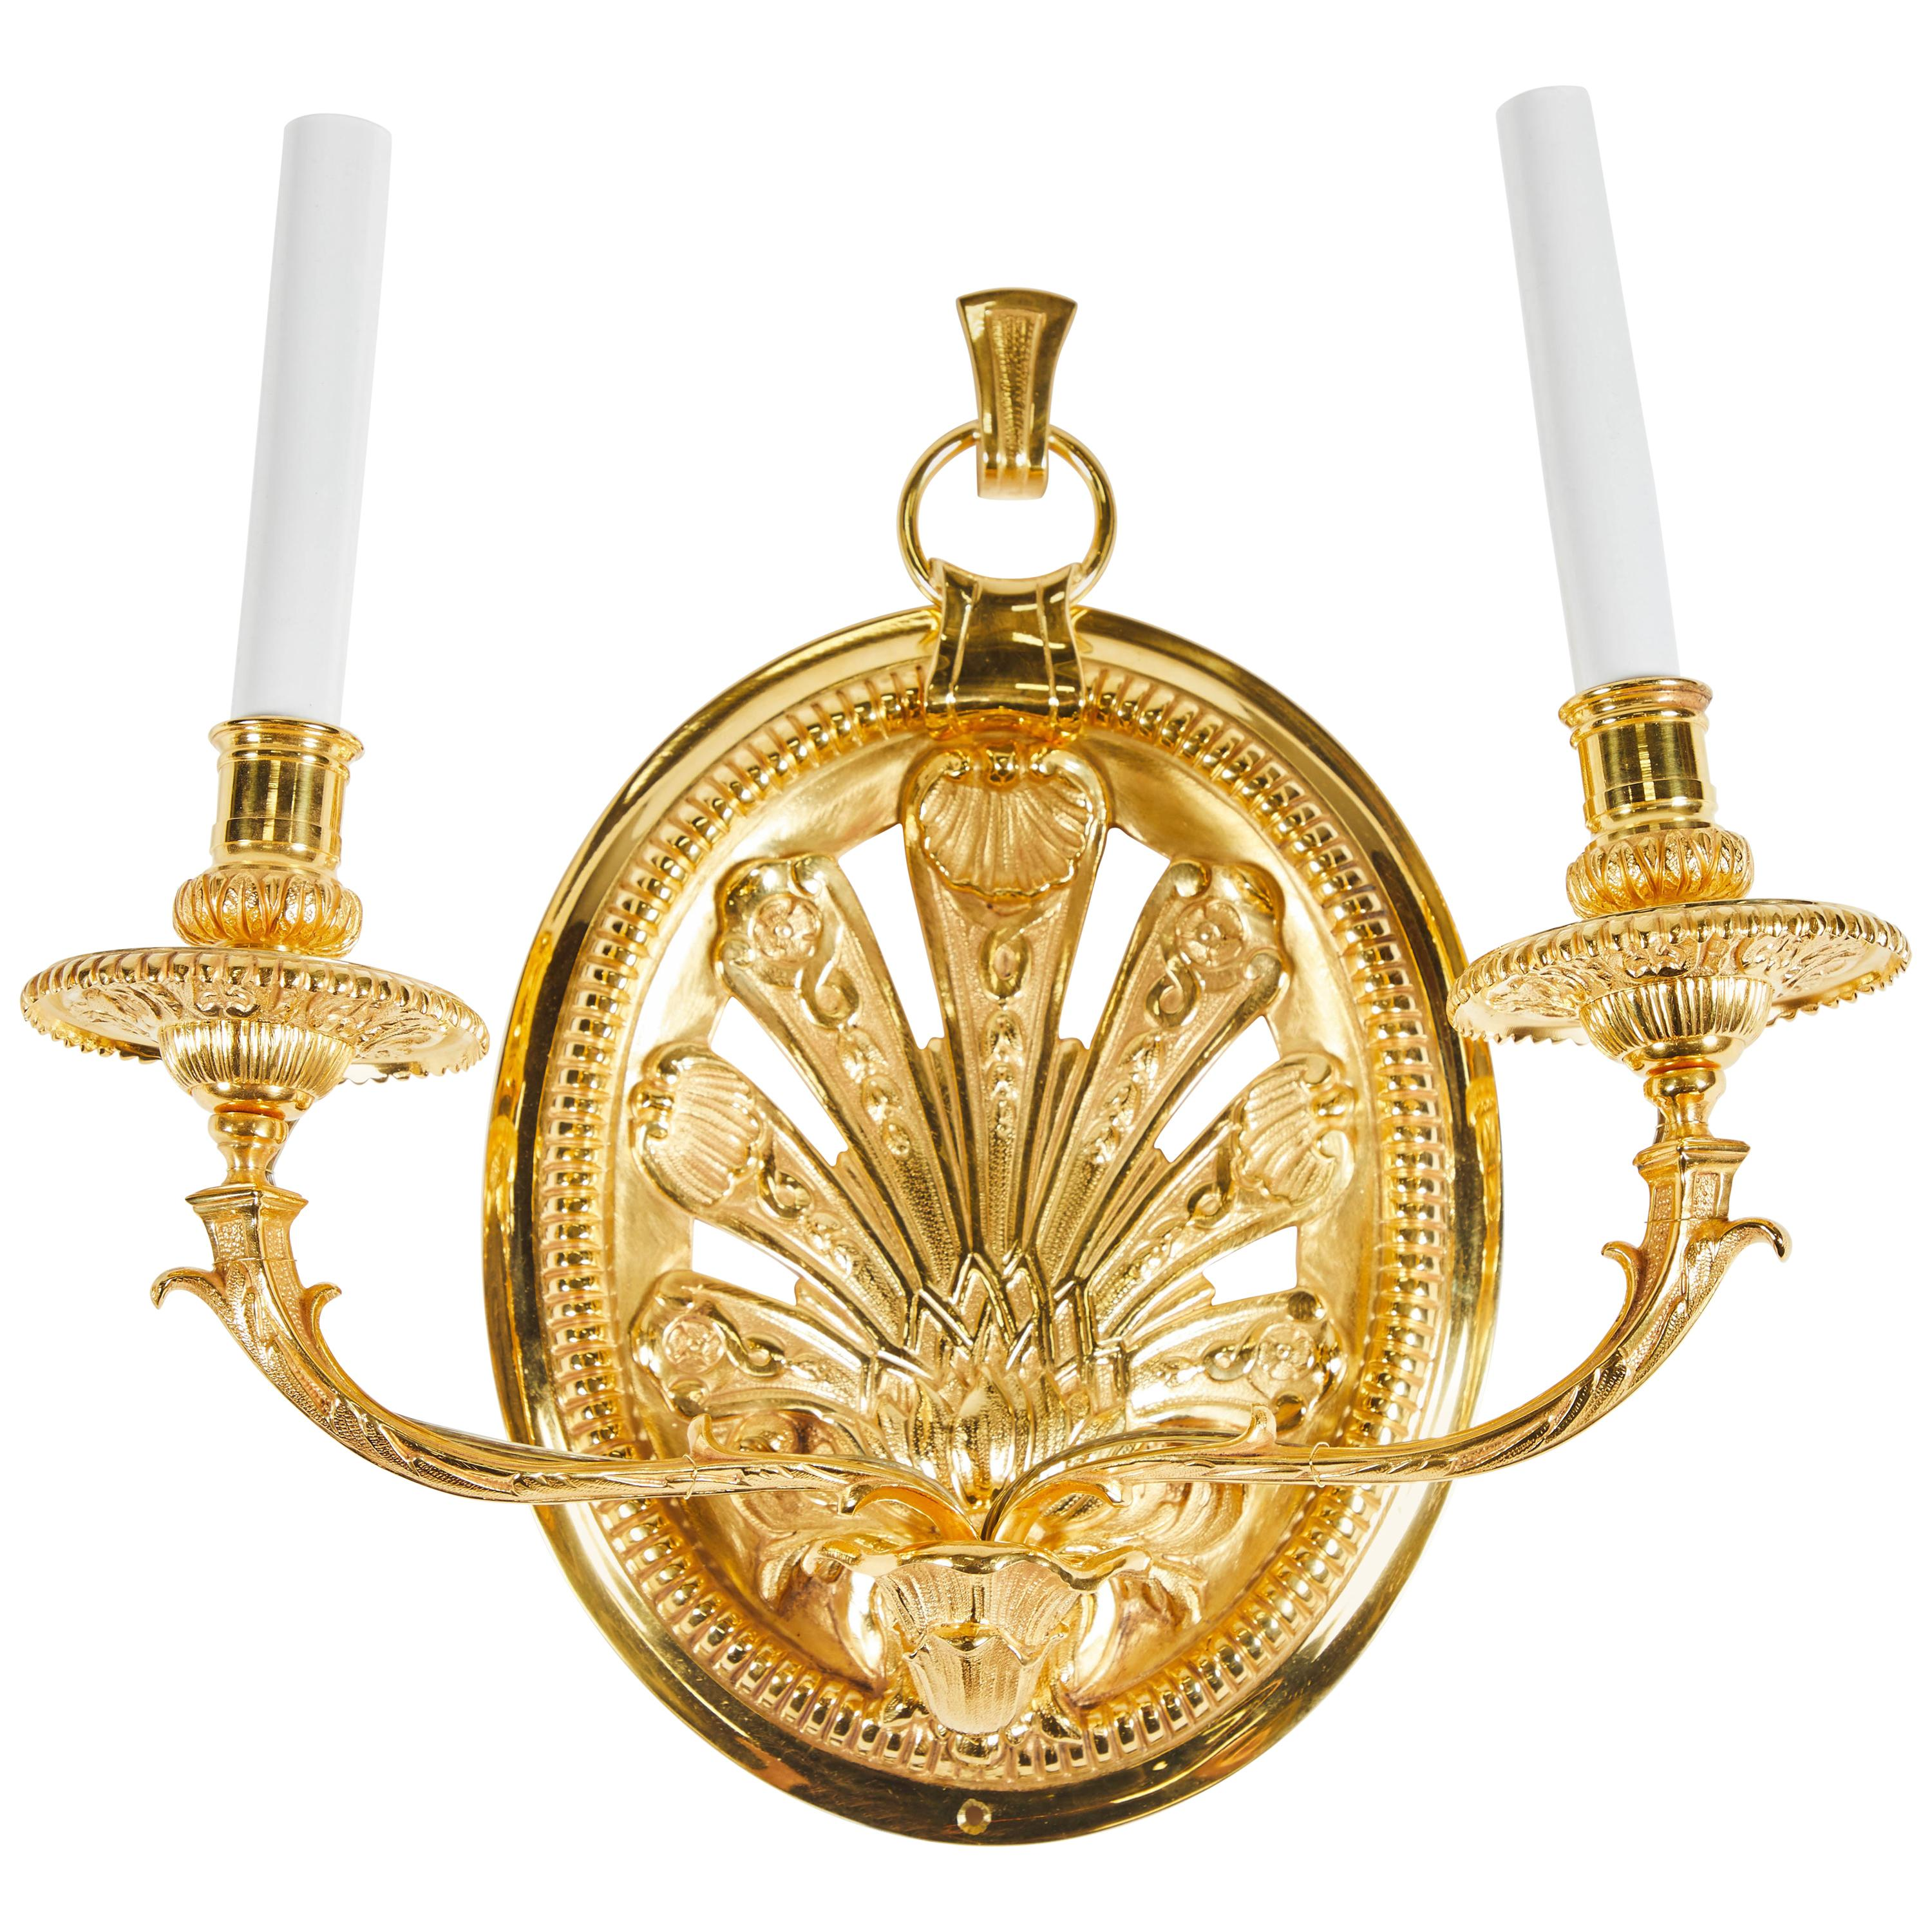 Pair of Delisle Gold-Plated Sconces